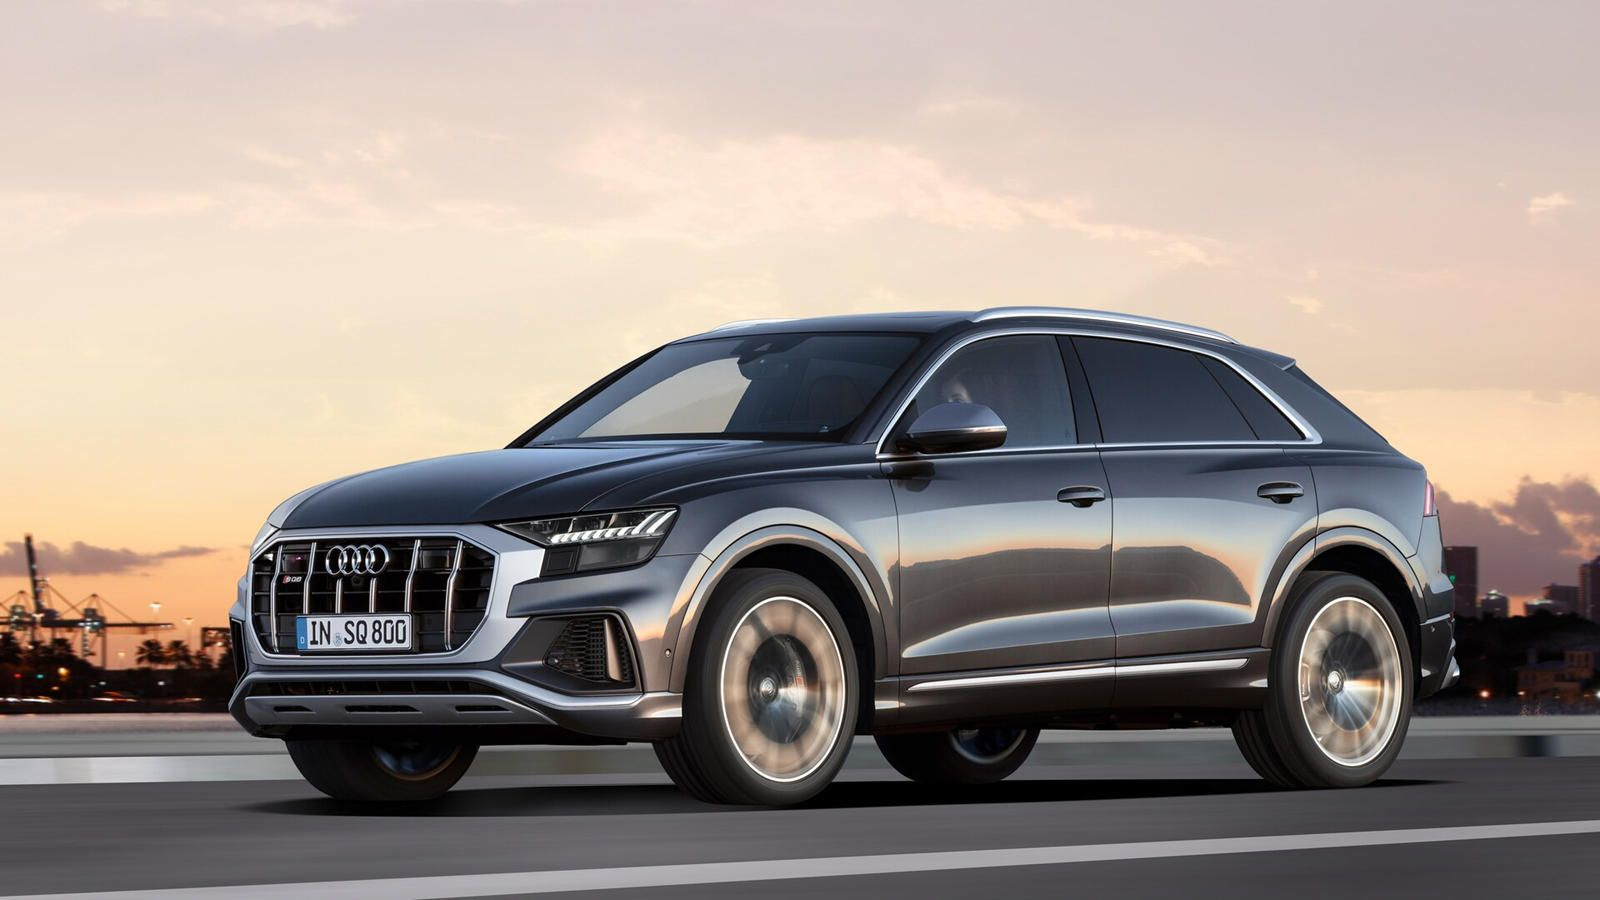 2020 Audi Sq8 First Look Review The Hot Middle Ground Stuffed Between The Q8 And Rs Q8 This New Sq8 Means Business In 2020 Audi Car Models Audi Suv